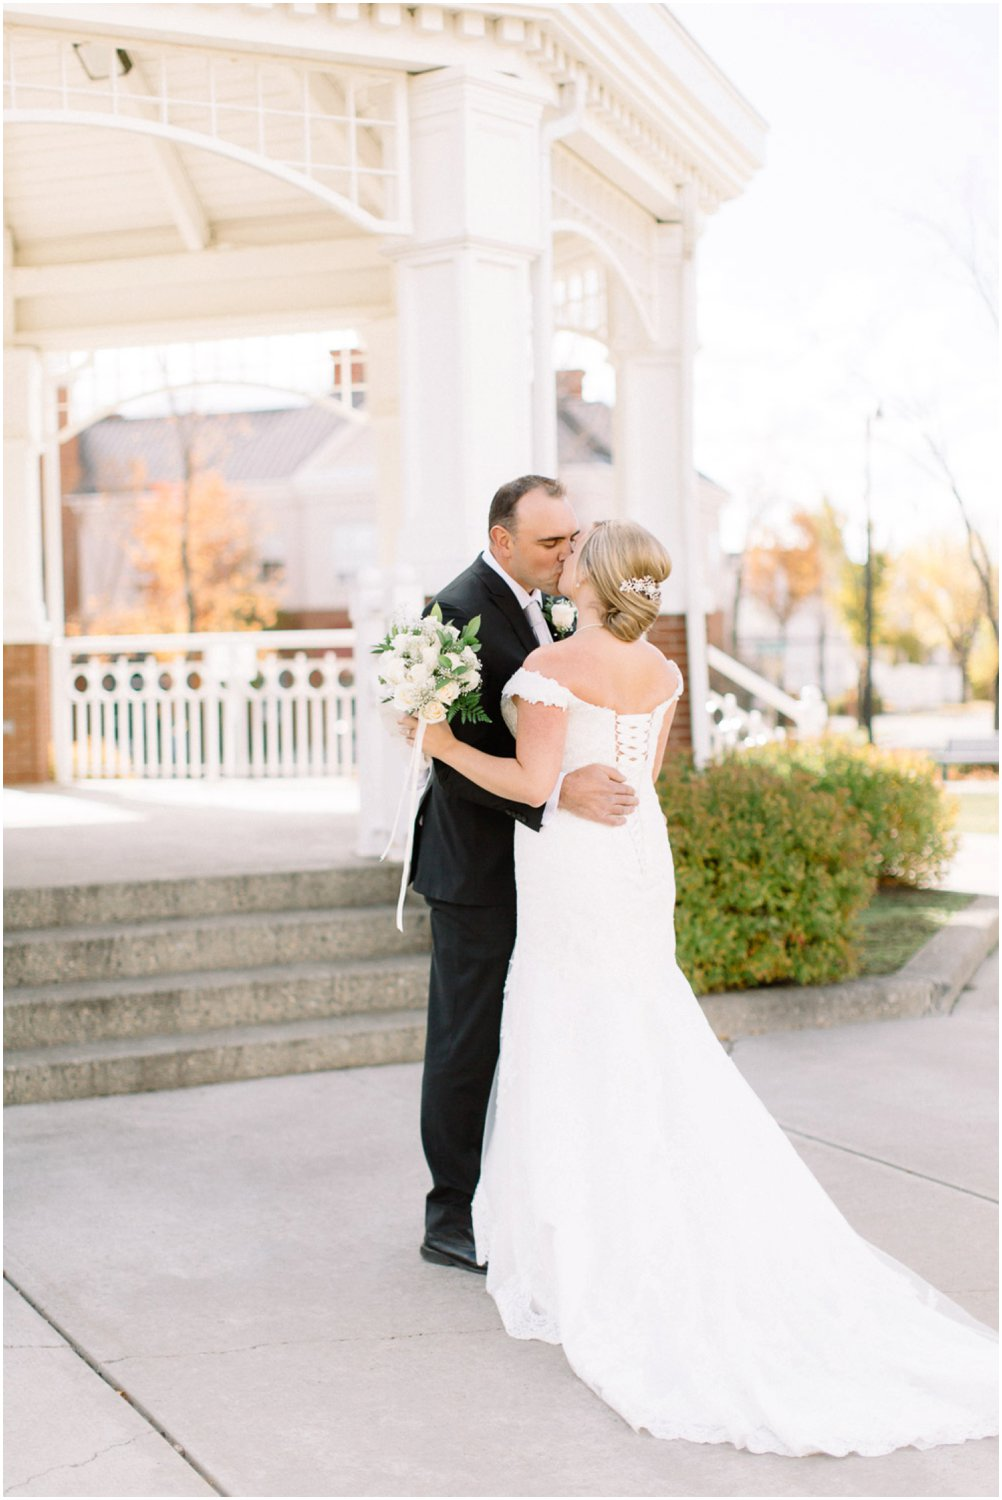 Gazebo wedding - Calgary Wedding Photographers_5185